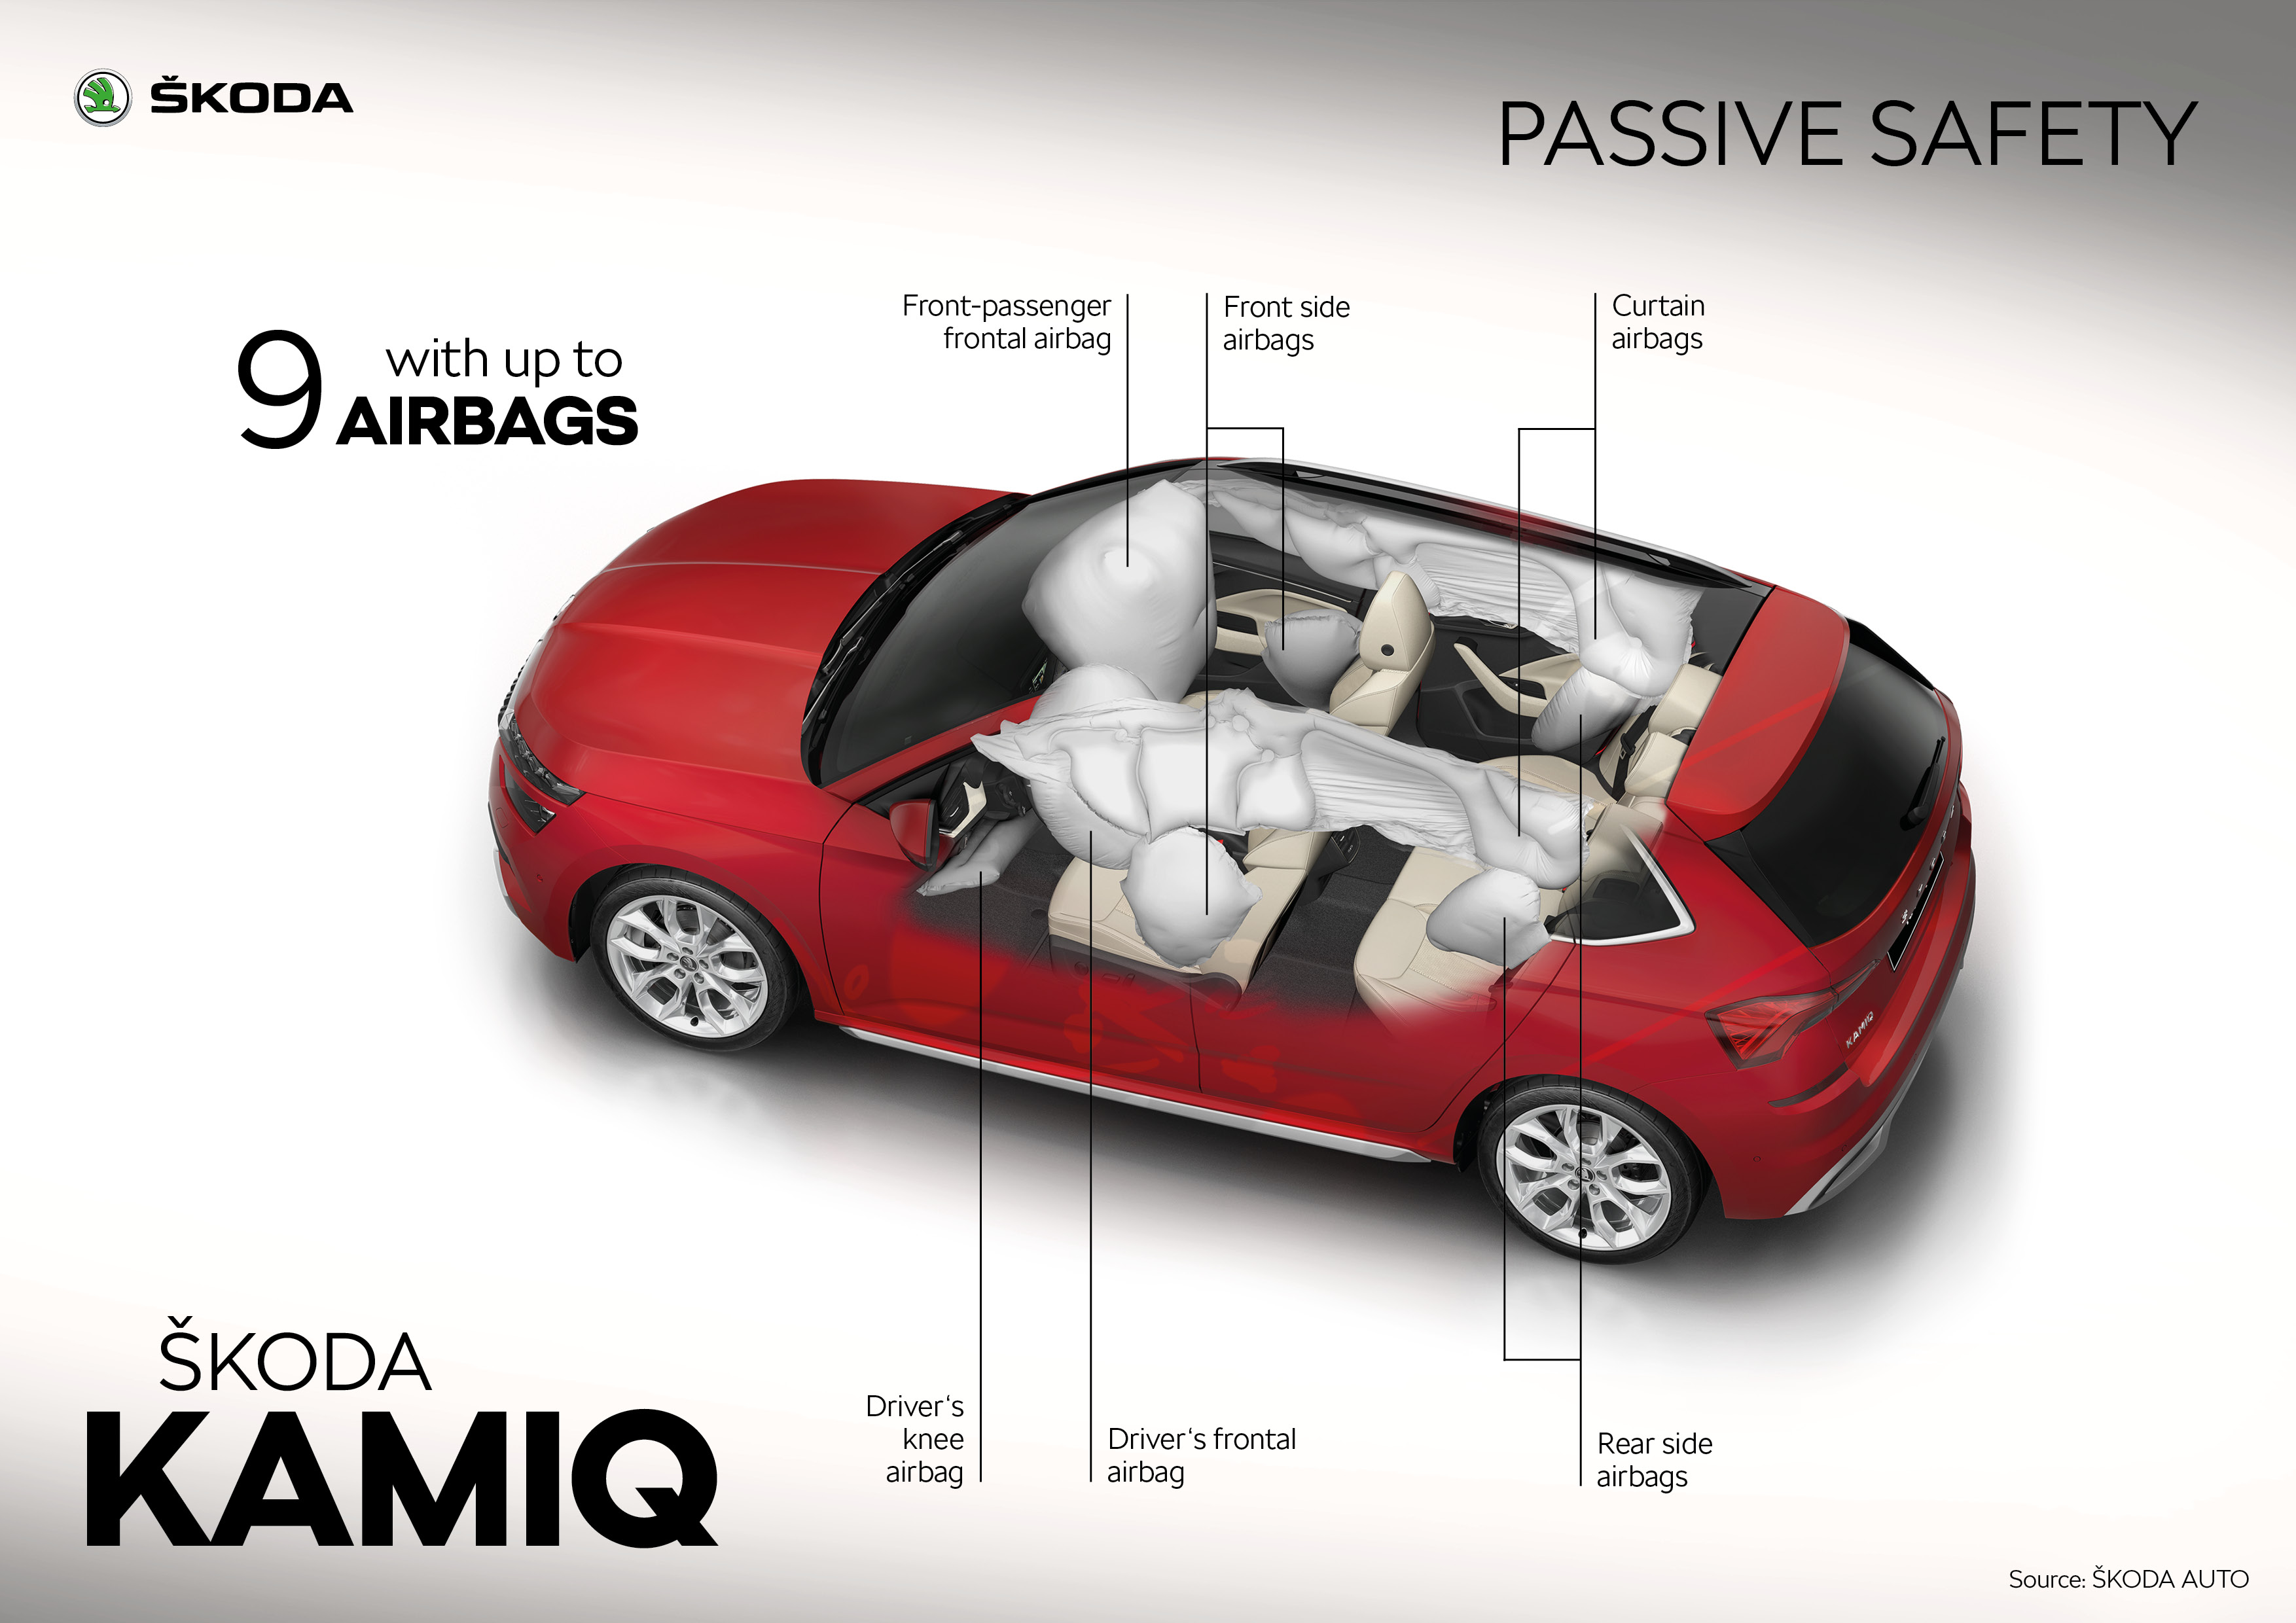 Modern safety and comfort assistants extremely popular in SKODA SCALA and KAMIQ - Image 2